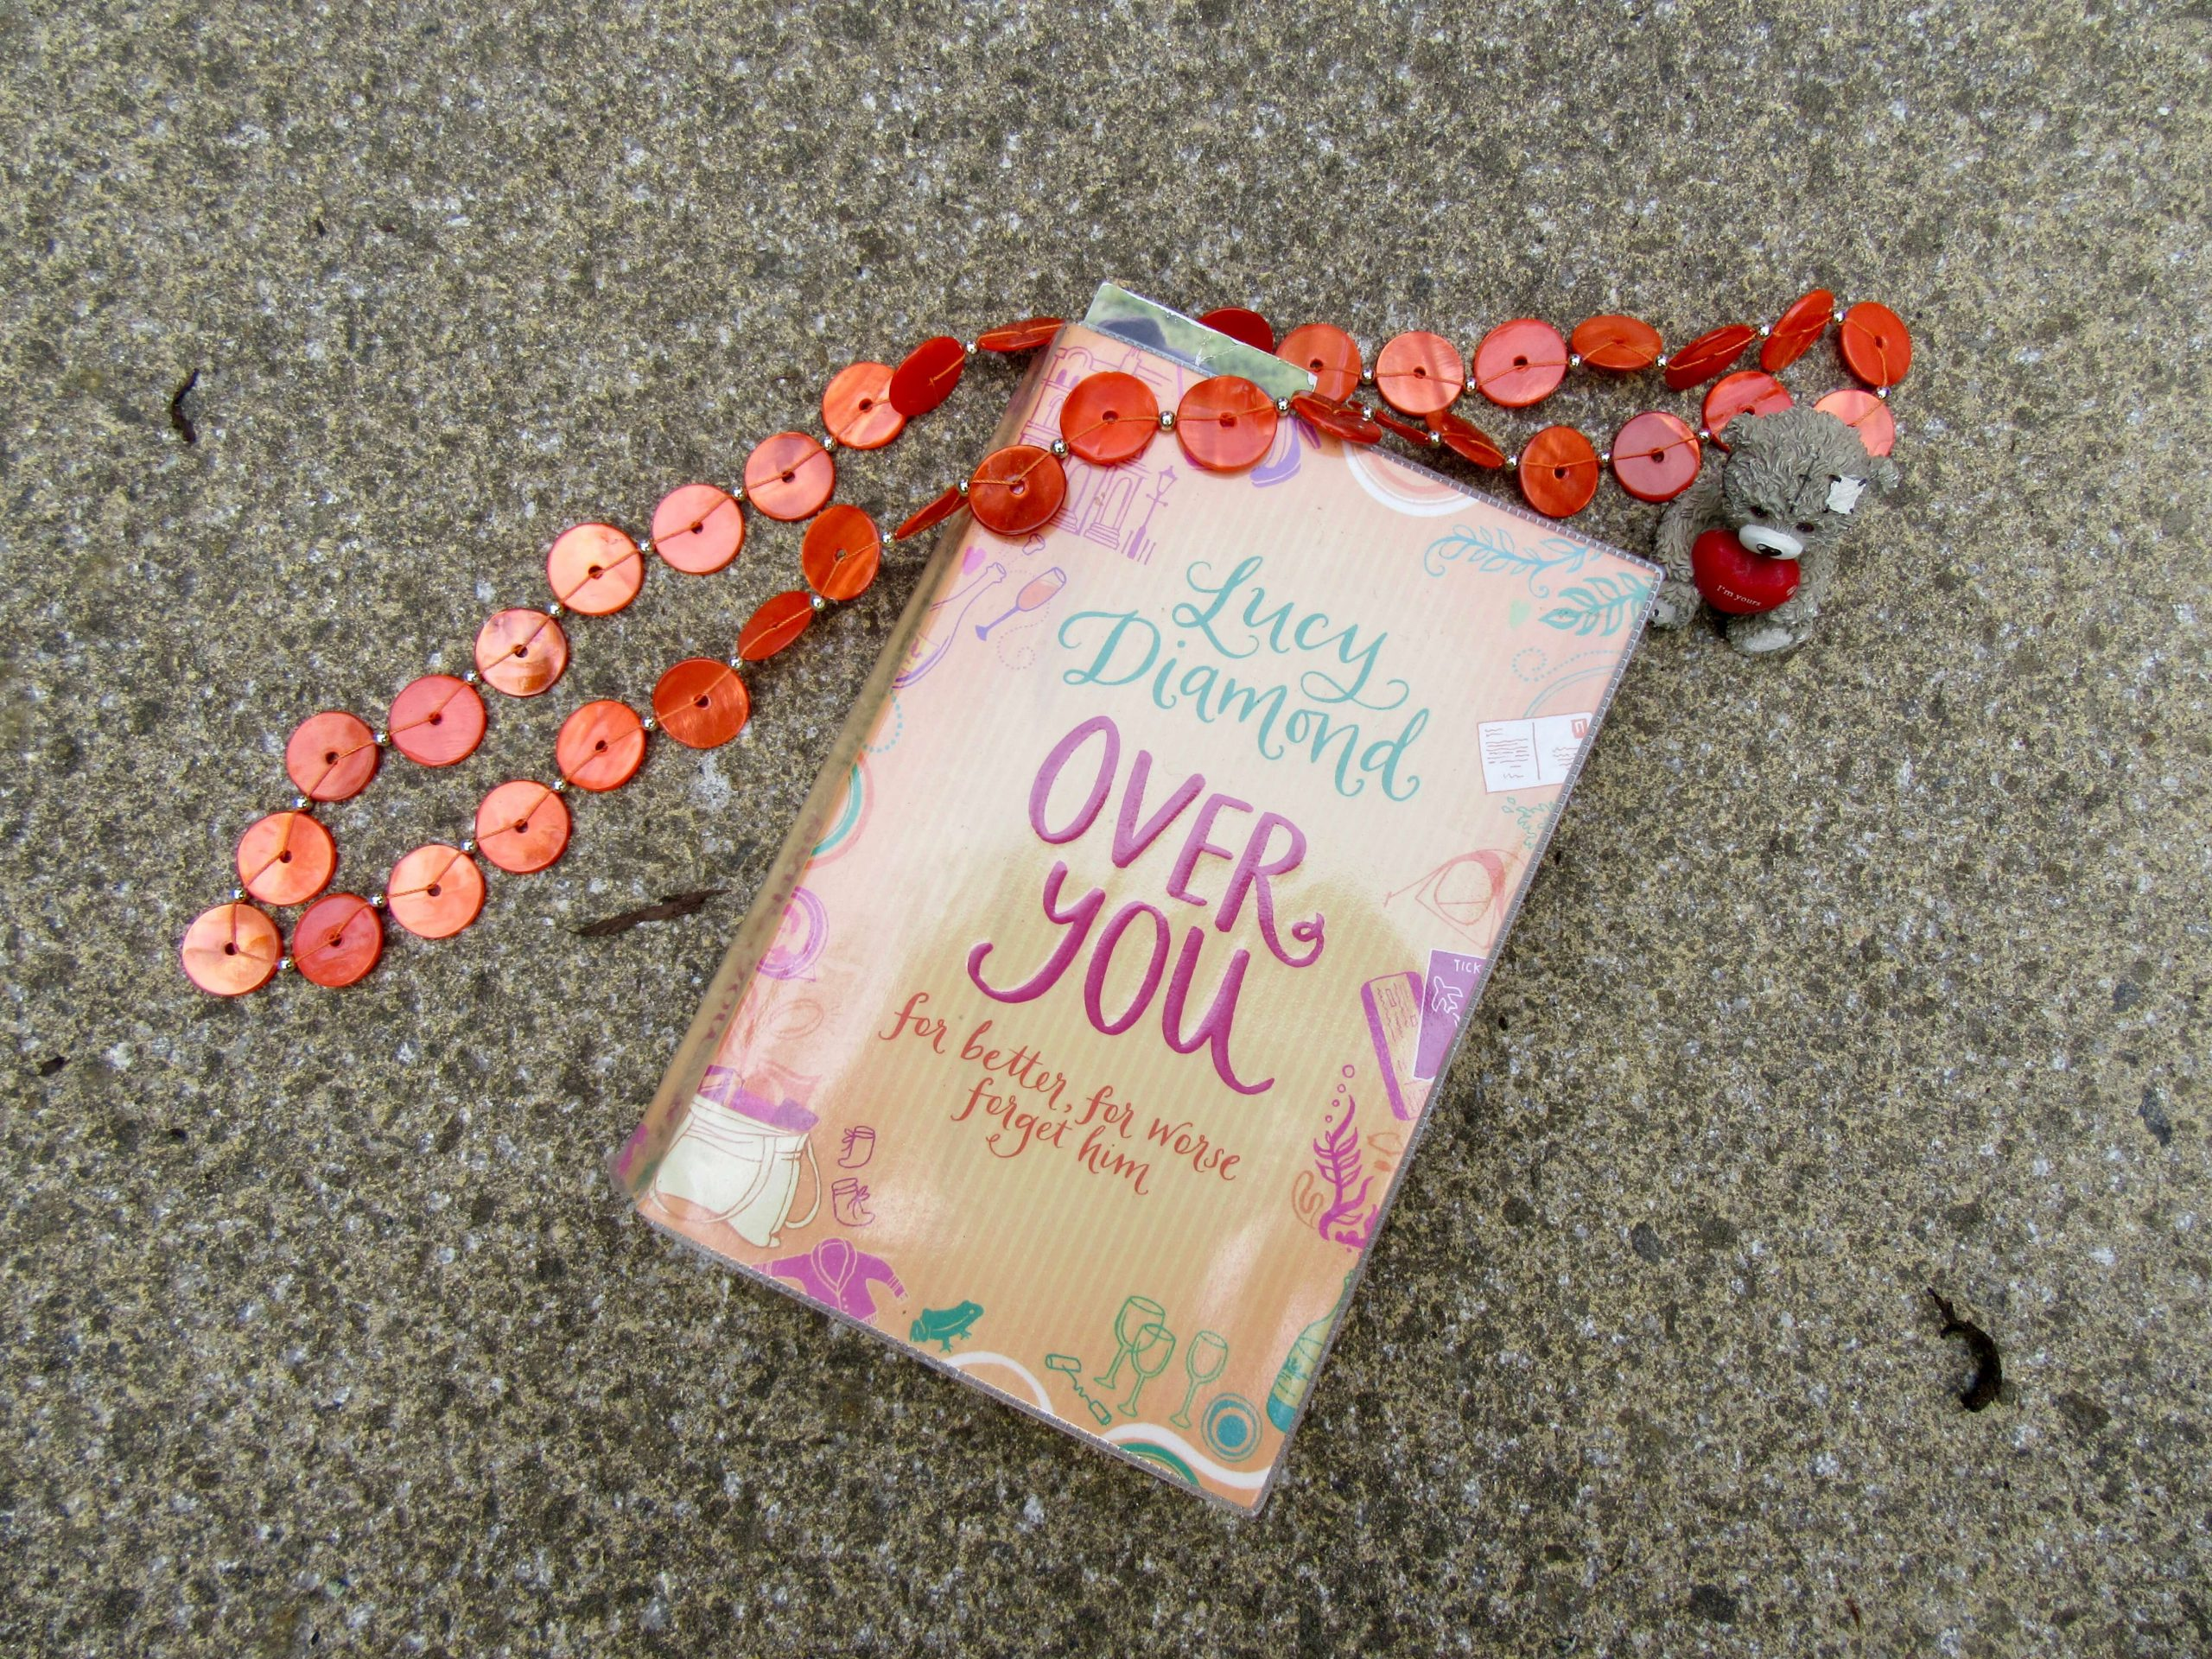 mid year book tag picture of a book, necklace and teddy bear holding a heart ornament